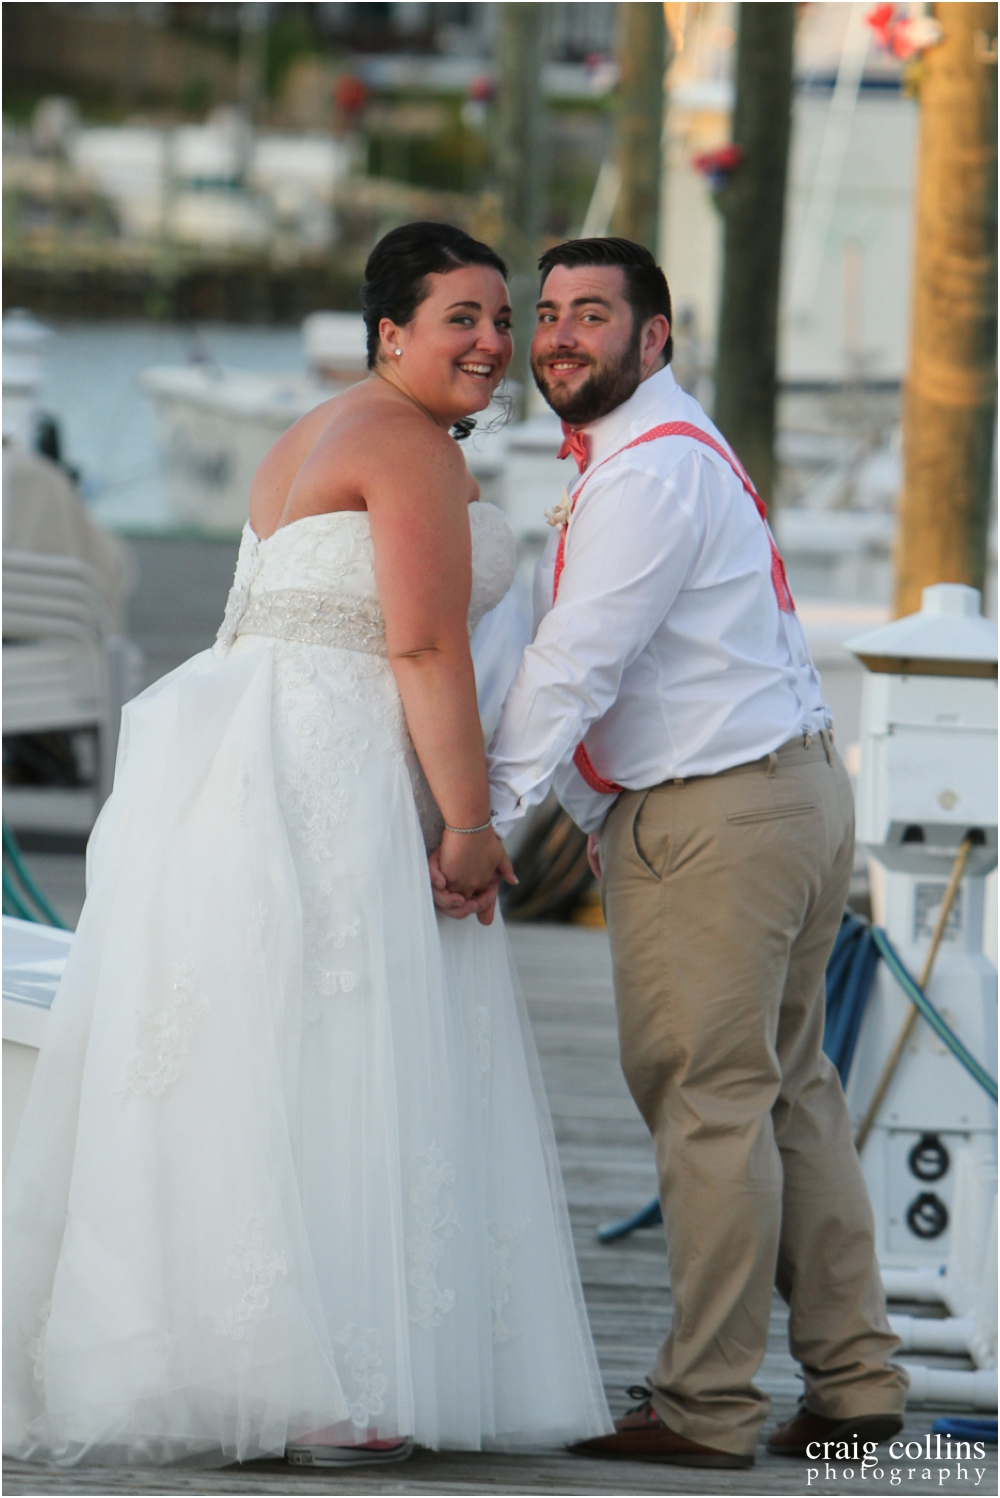 Crystal-Point-Yacht-Club-Wedding-Craig-Collins-Photography_0008